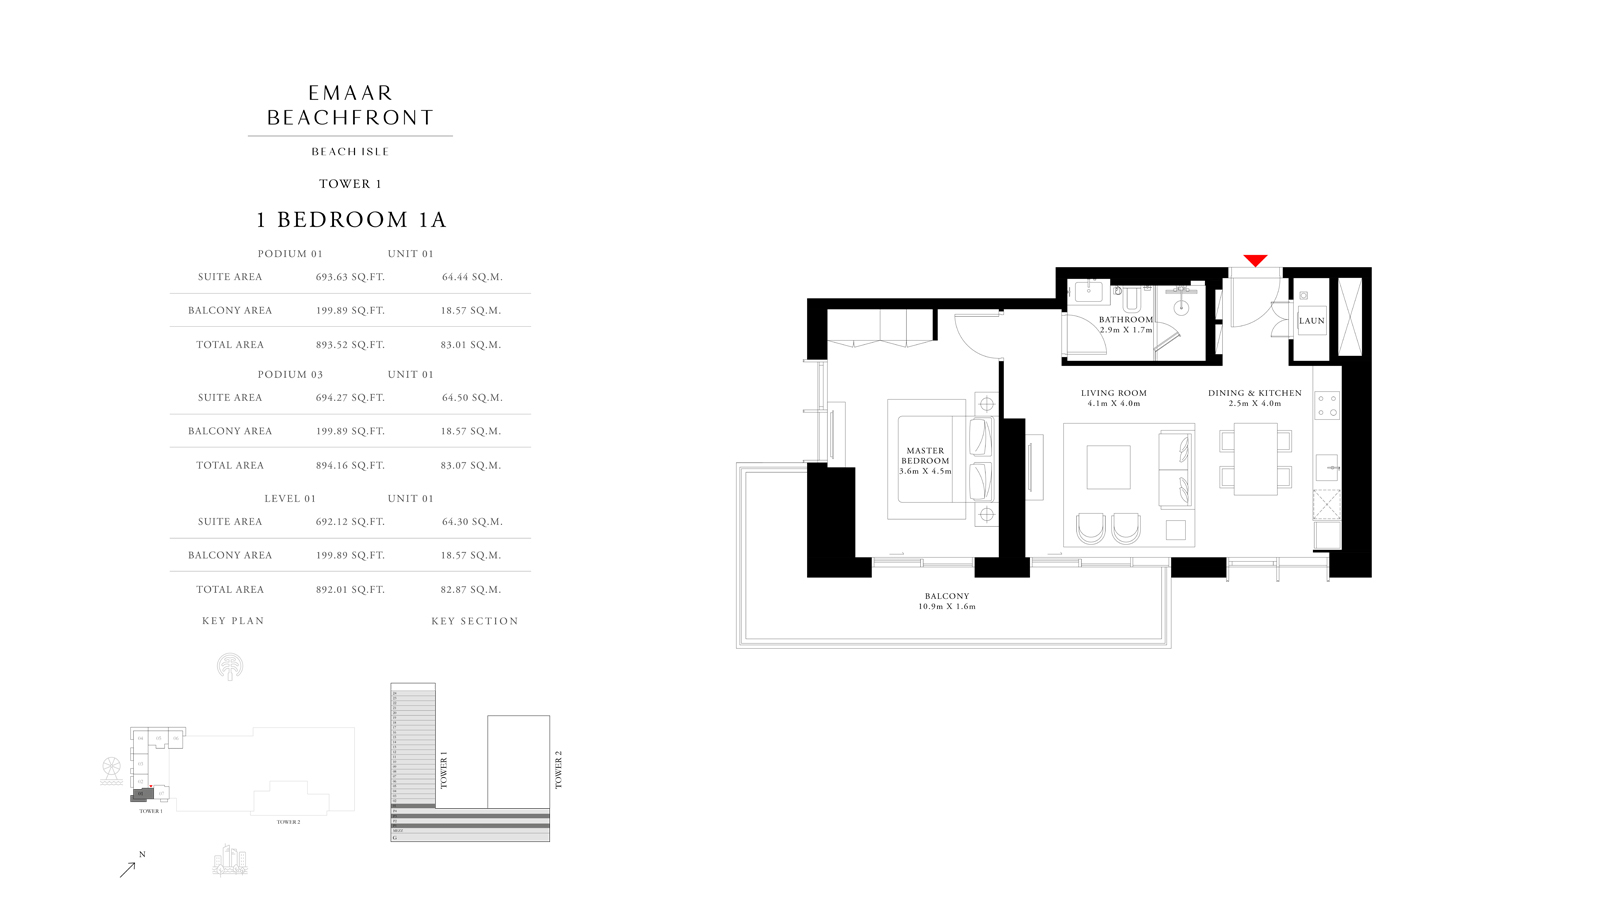 1 Bedroom 1A Tower 1, Size 892 sq f